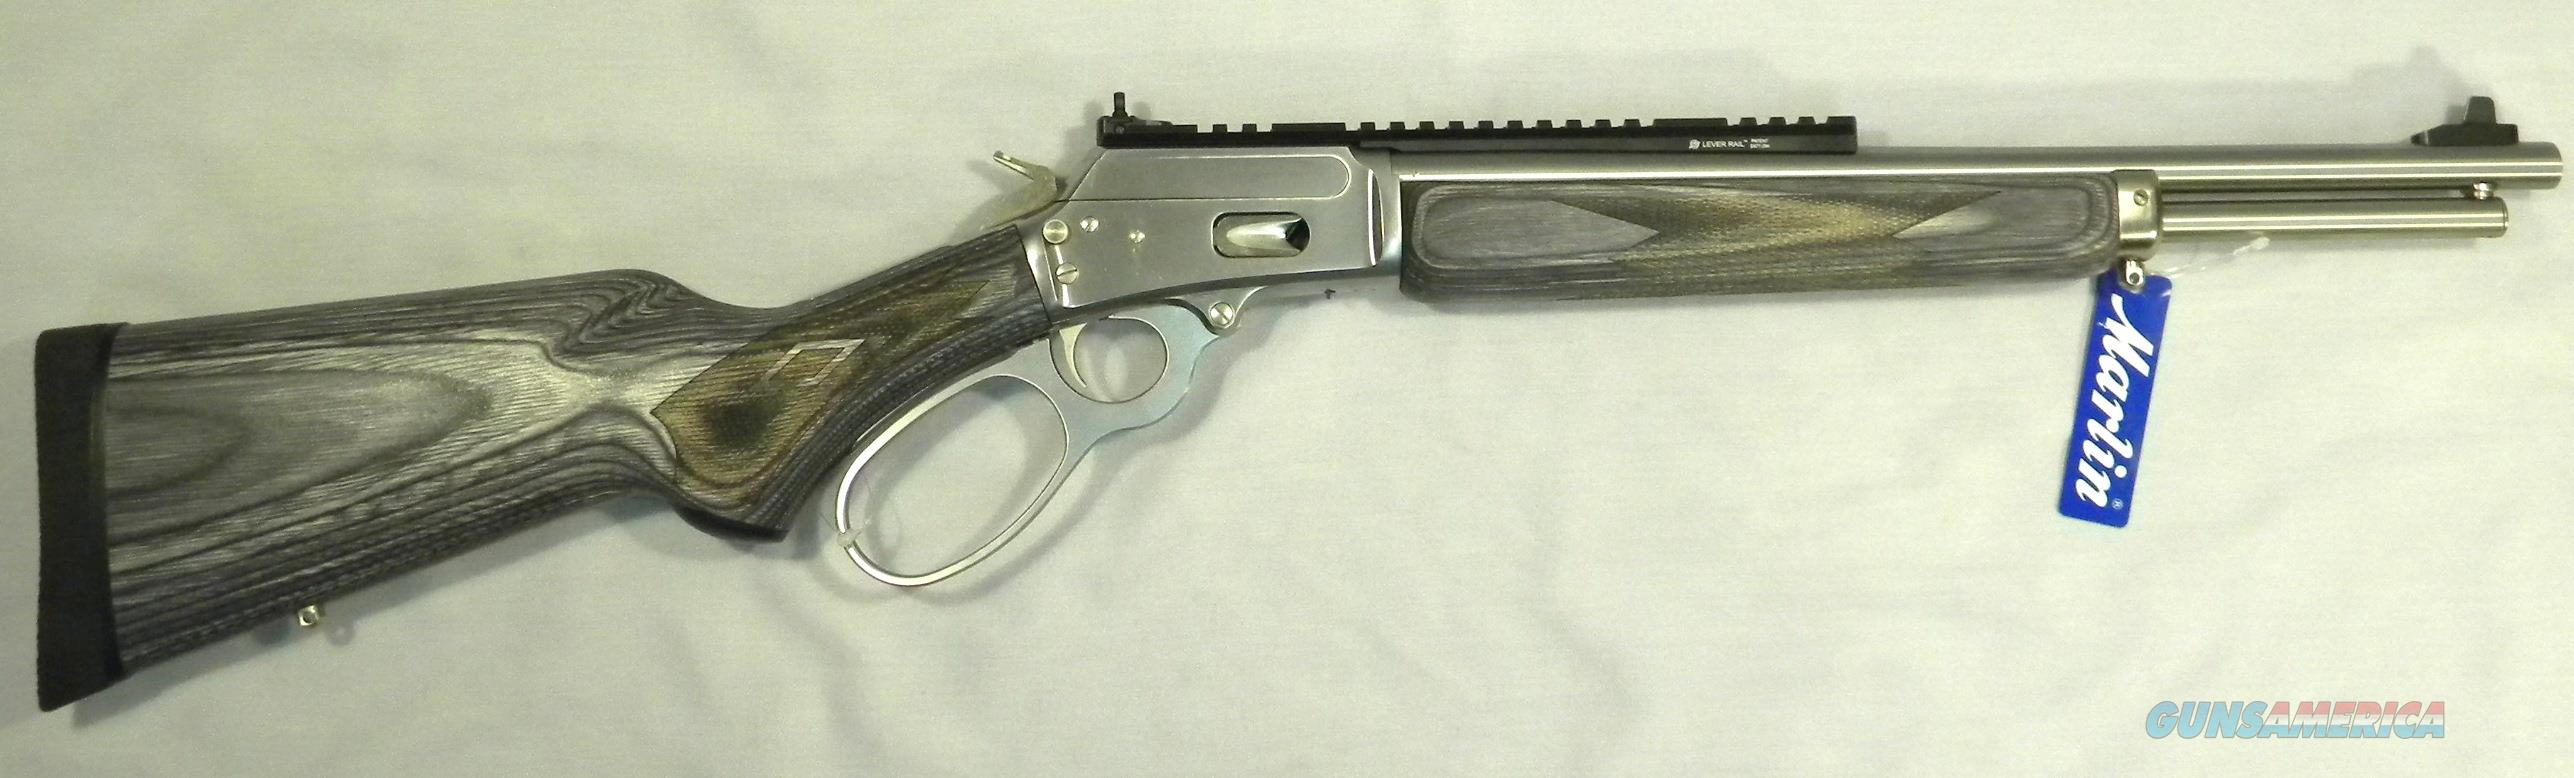 Marlin 1894 CSBL, Stainless .357 Magnum Lever-Action Rifle  Guns > Rifles > Marlin Rifles > Modern > Lever Action